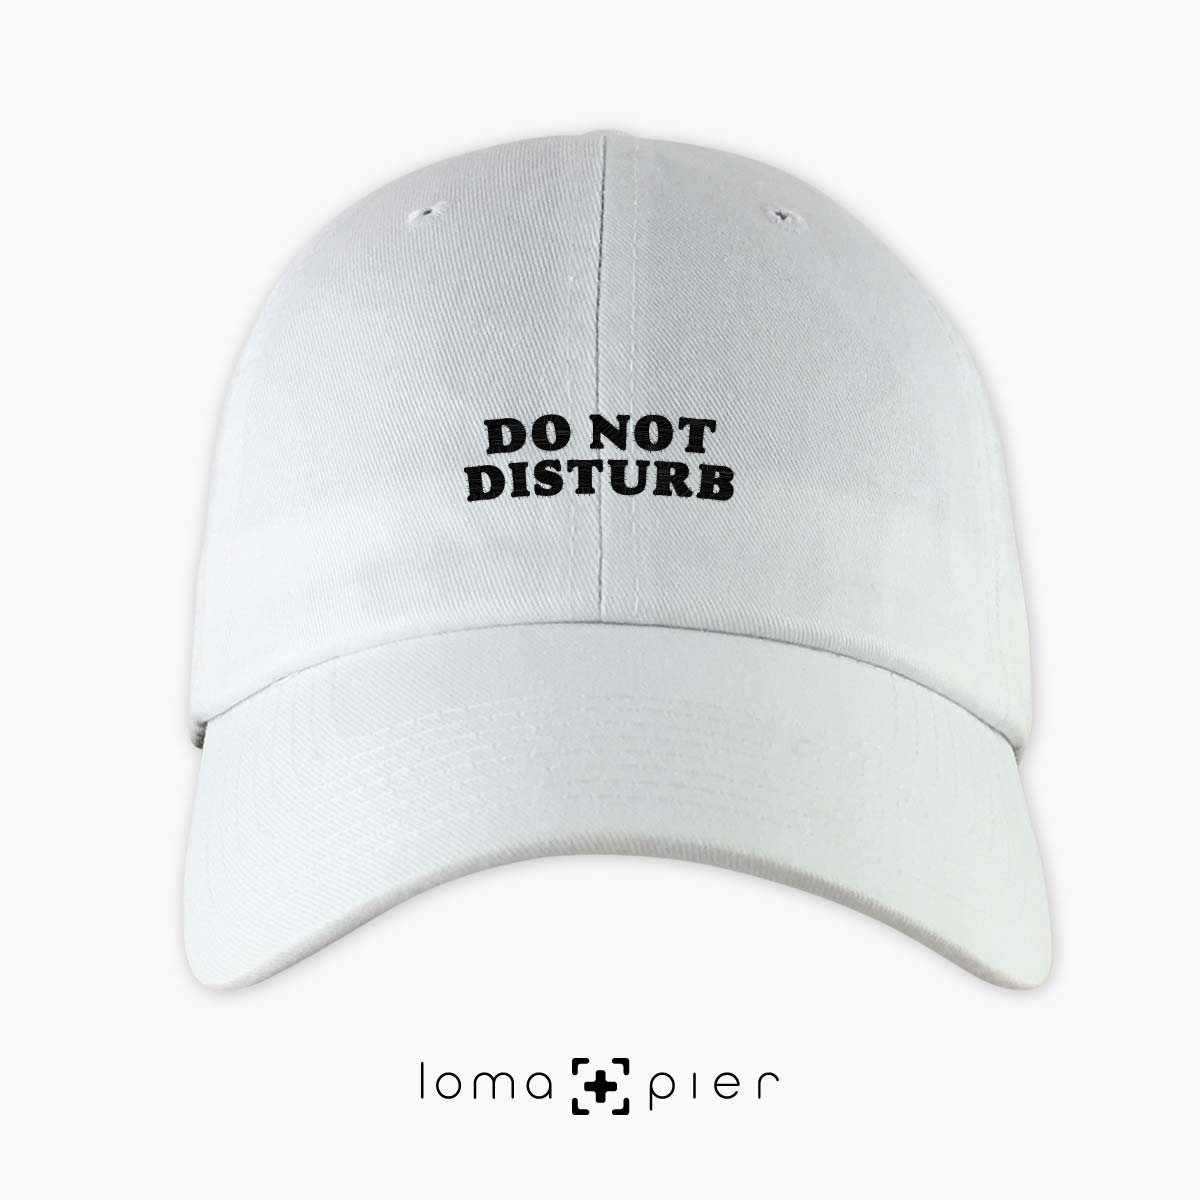 DO NOT DISTURB pessimistic hat by loma+pier hat store